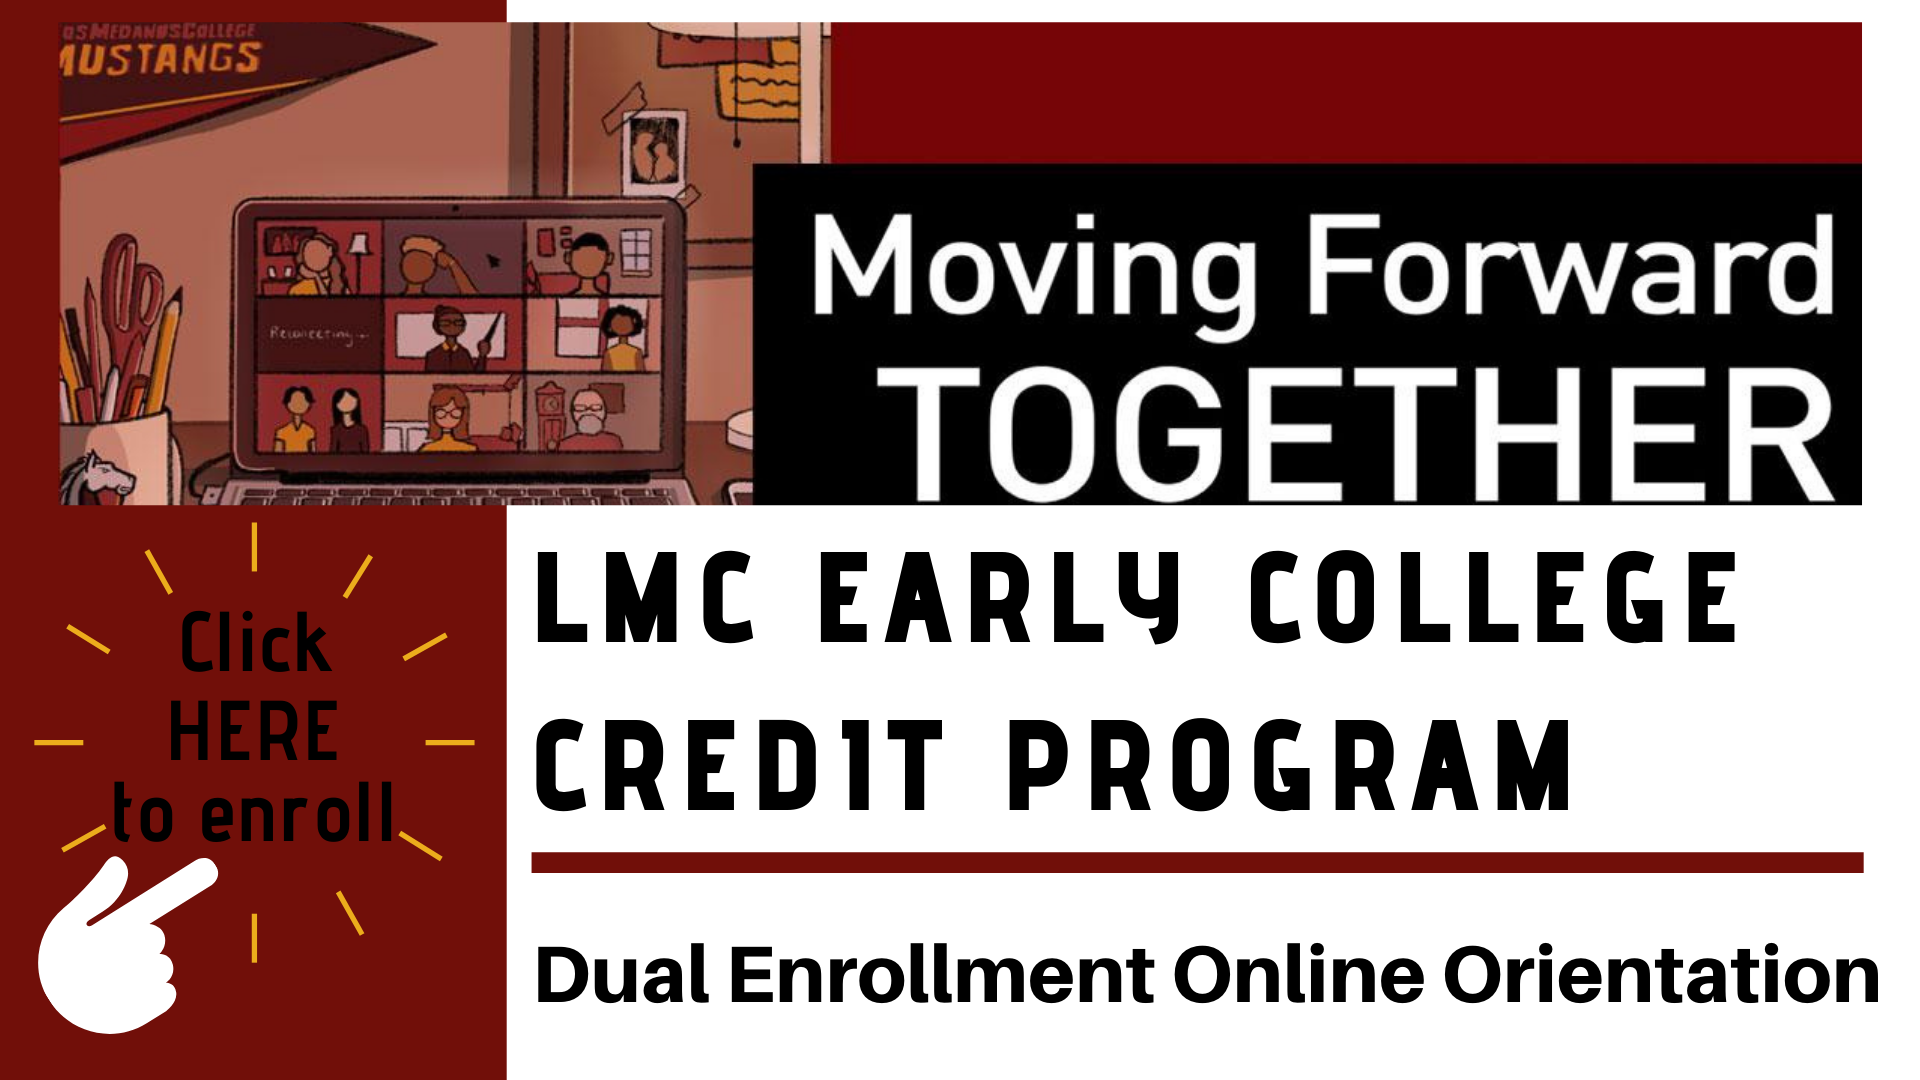 click here to enroll in the LMC DE Online Orientation